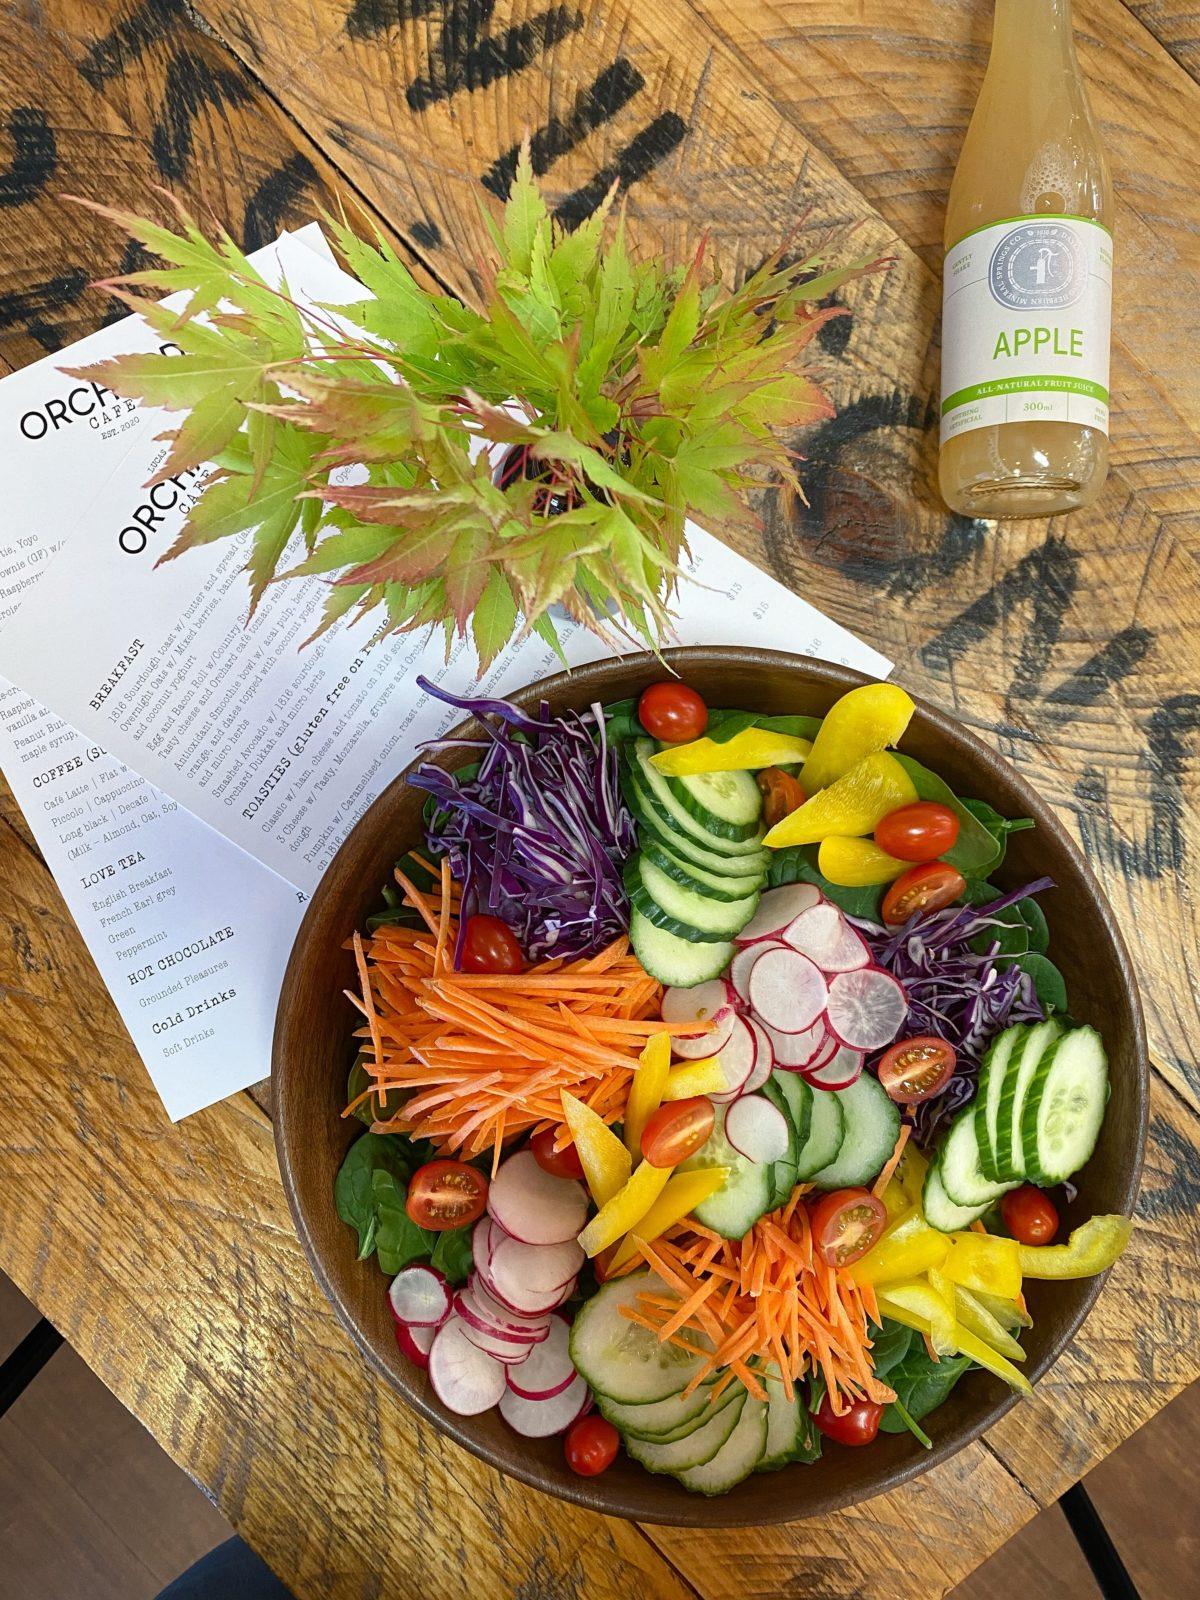 Orchard Salad using the best local produce